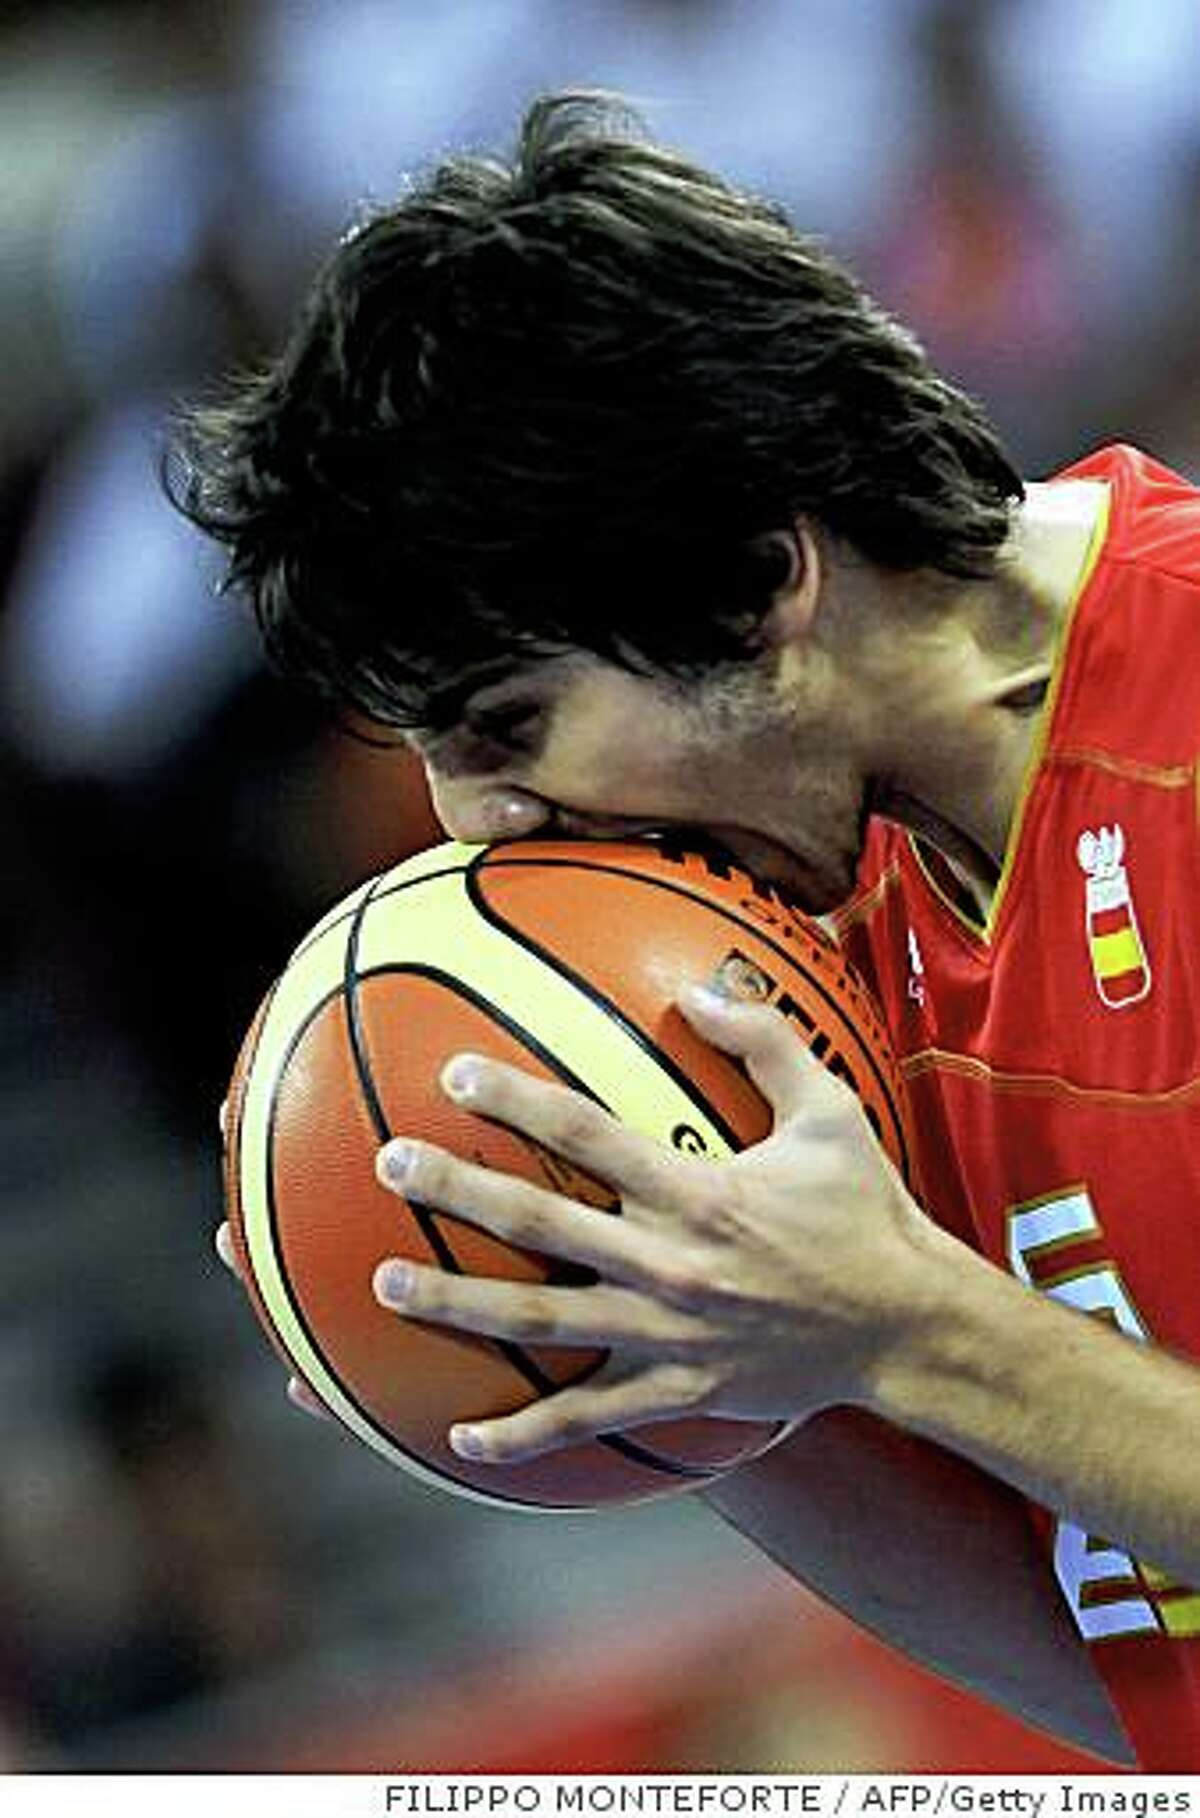 Spain's Ricky Rubio bites the ball during the 2008 Beijing Olympic Games men's preliminary round group B basketball match against China at the Olympic basketball Arena in Beijing on August 12, 2008. Spain won 85 to 75. AFP PHOTO/ Filippo MONTEFORTE (Photo credit should read FILIPPO MONTEFORTE/AFP/Getty Images)